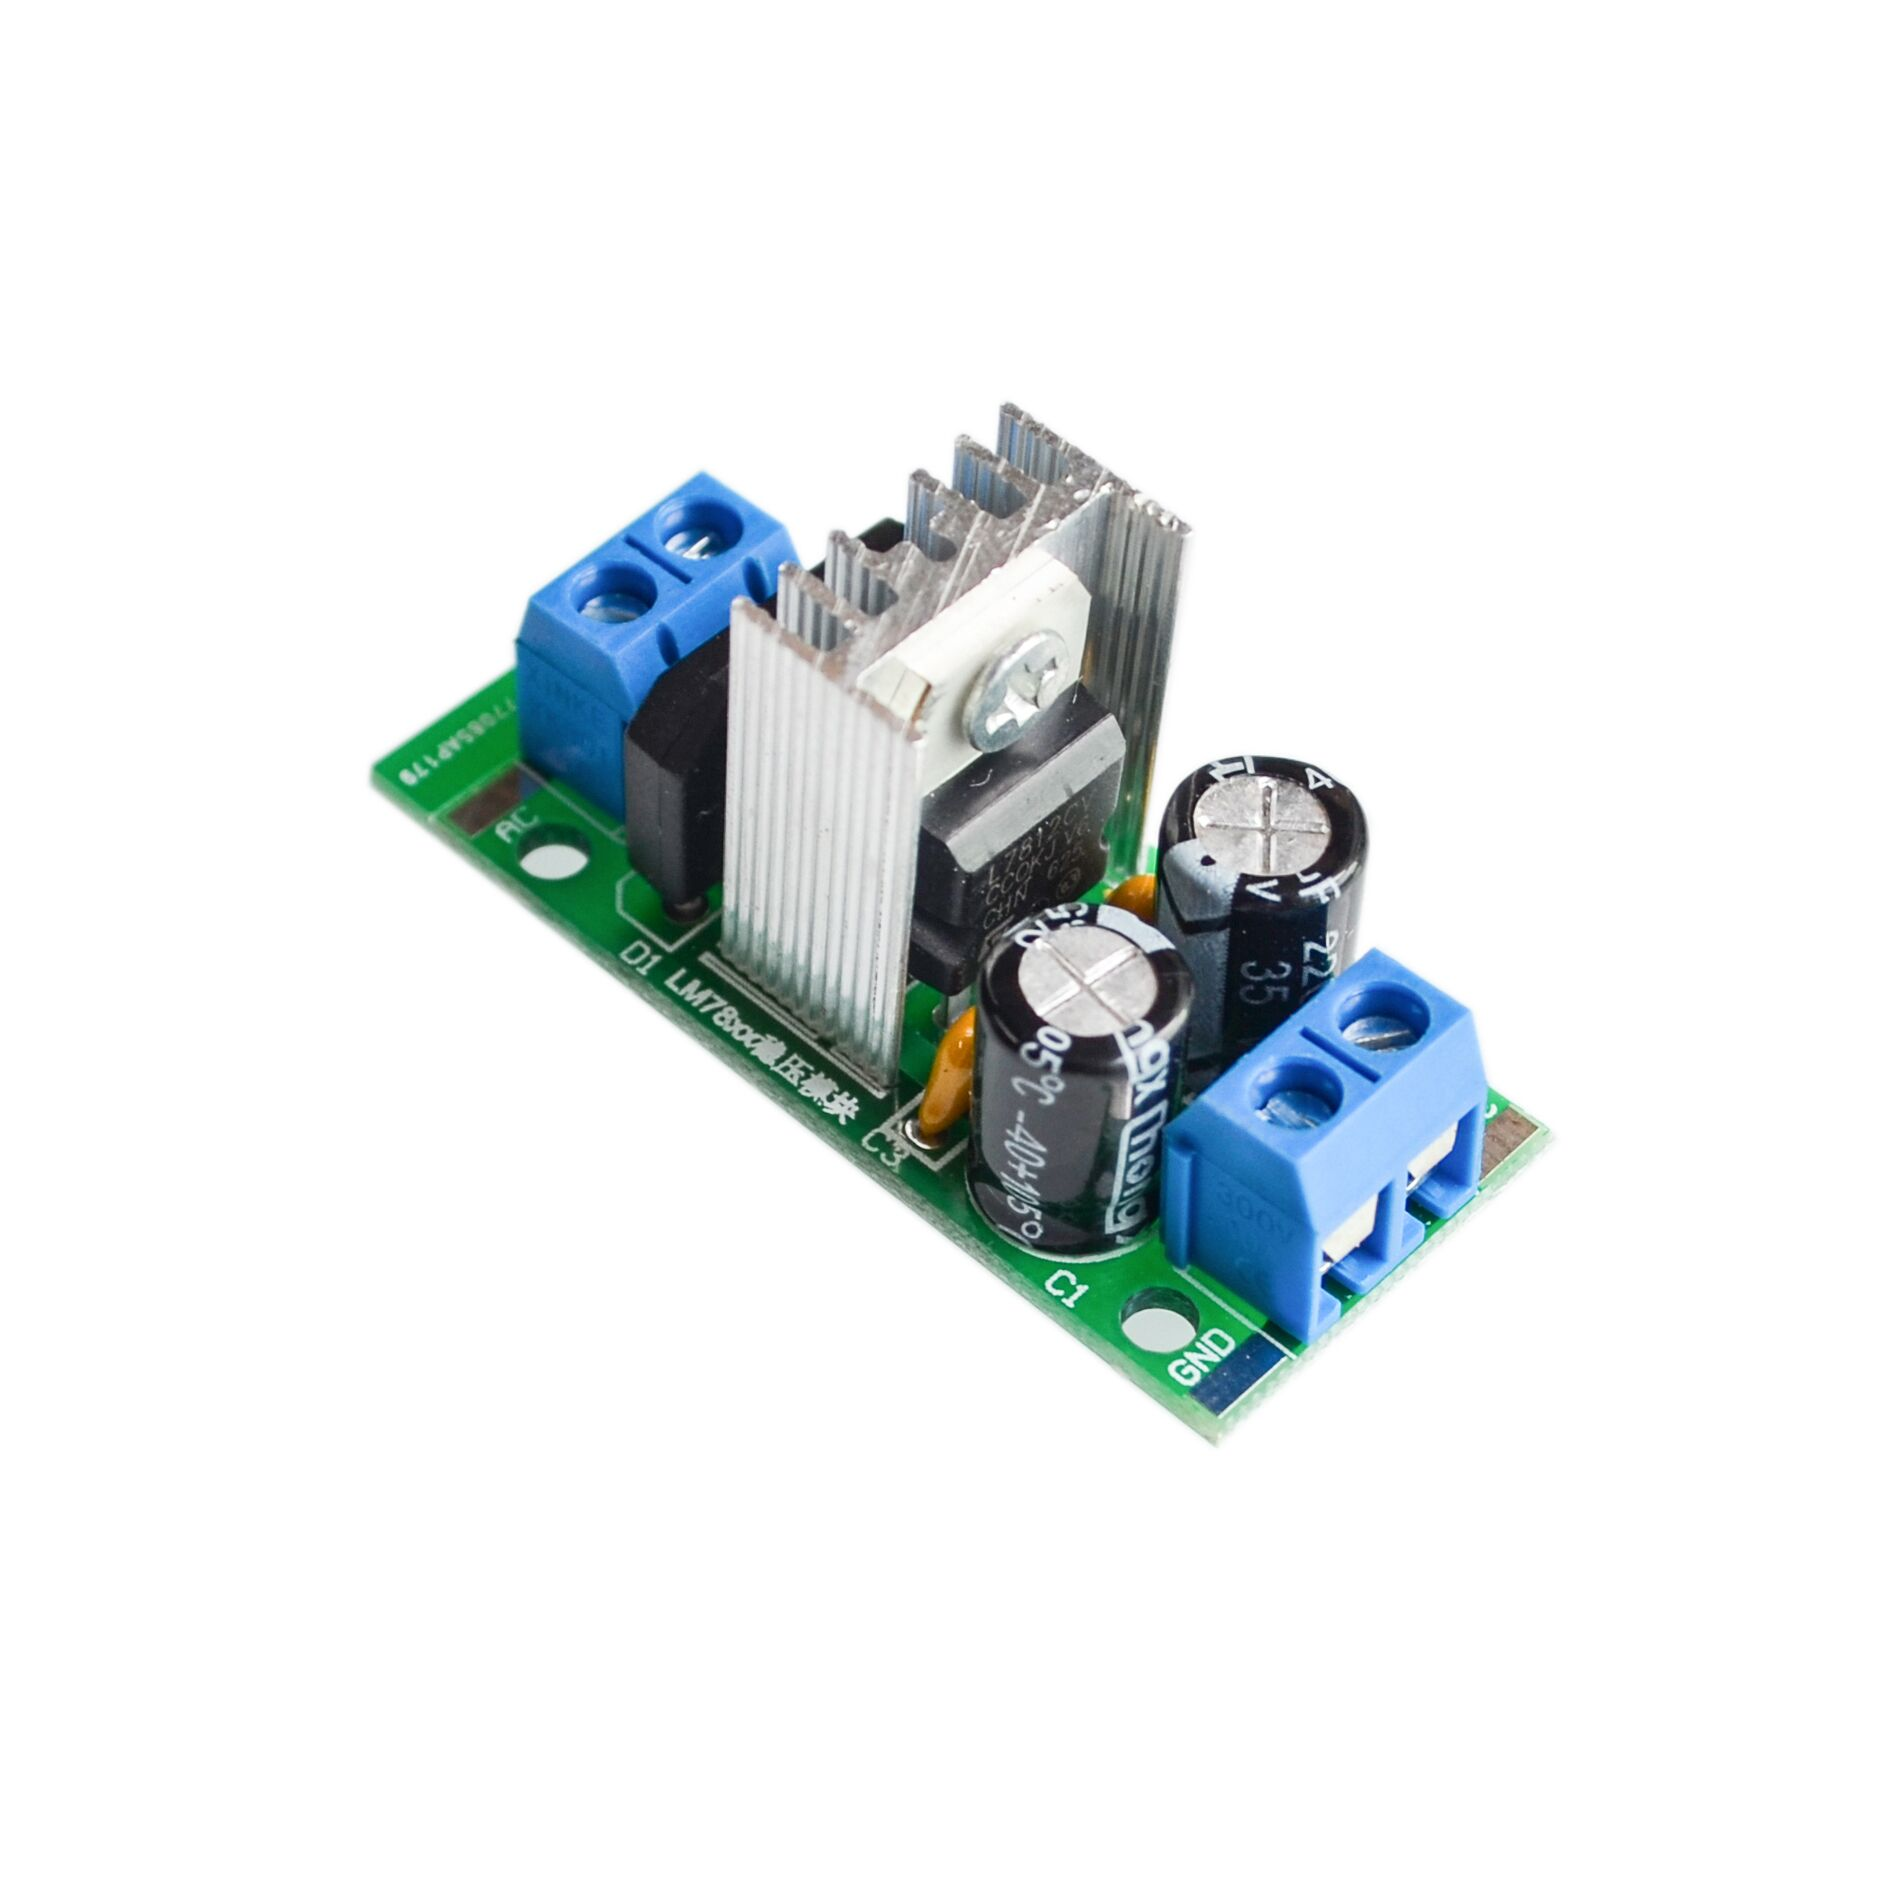 Ac Dc 12v 15a Voltage Regulator Filter Rectifier Module L7812 Four Powersupply Circuitsfixed Step Down Power Supply Output